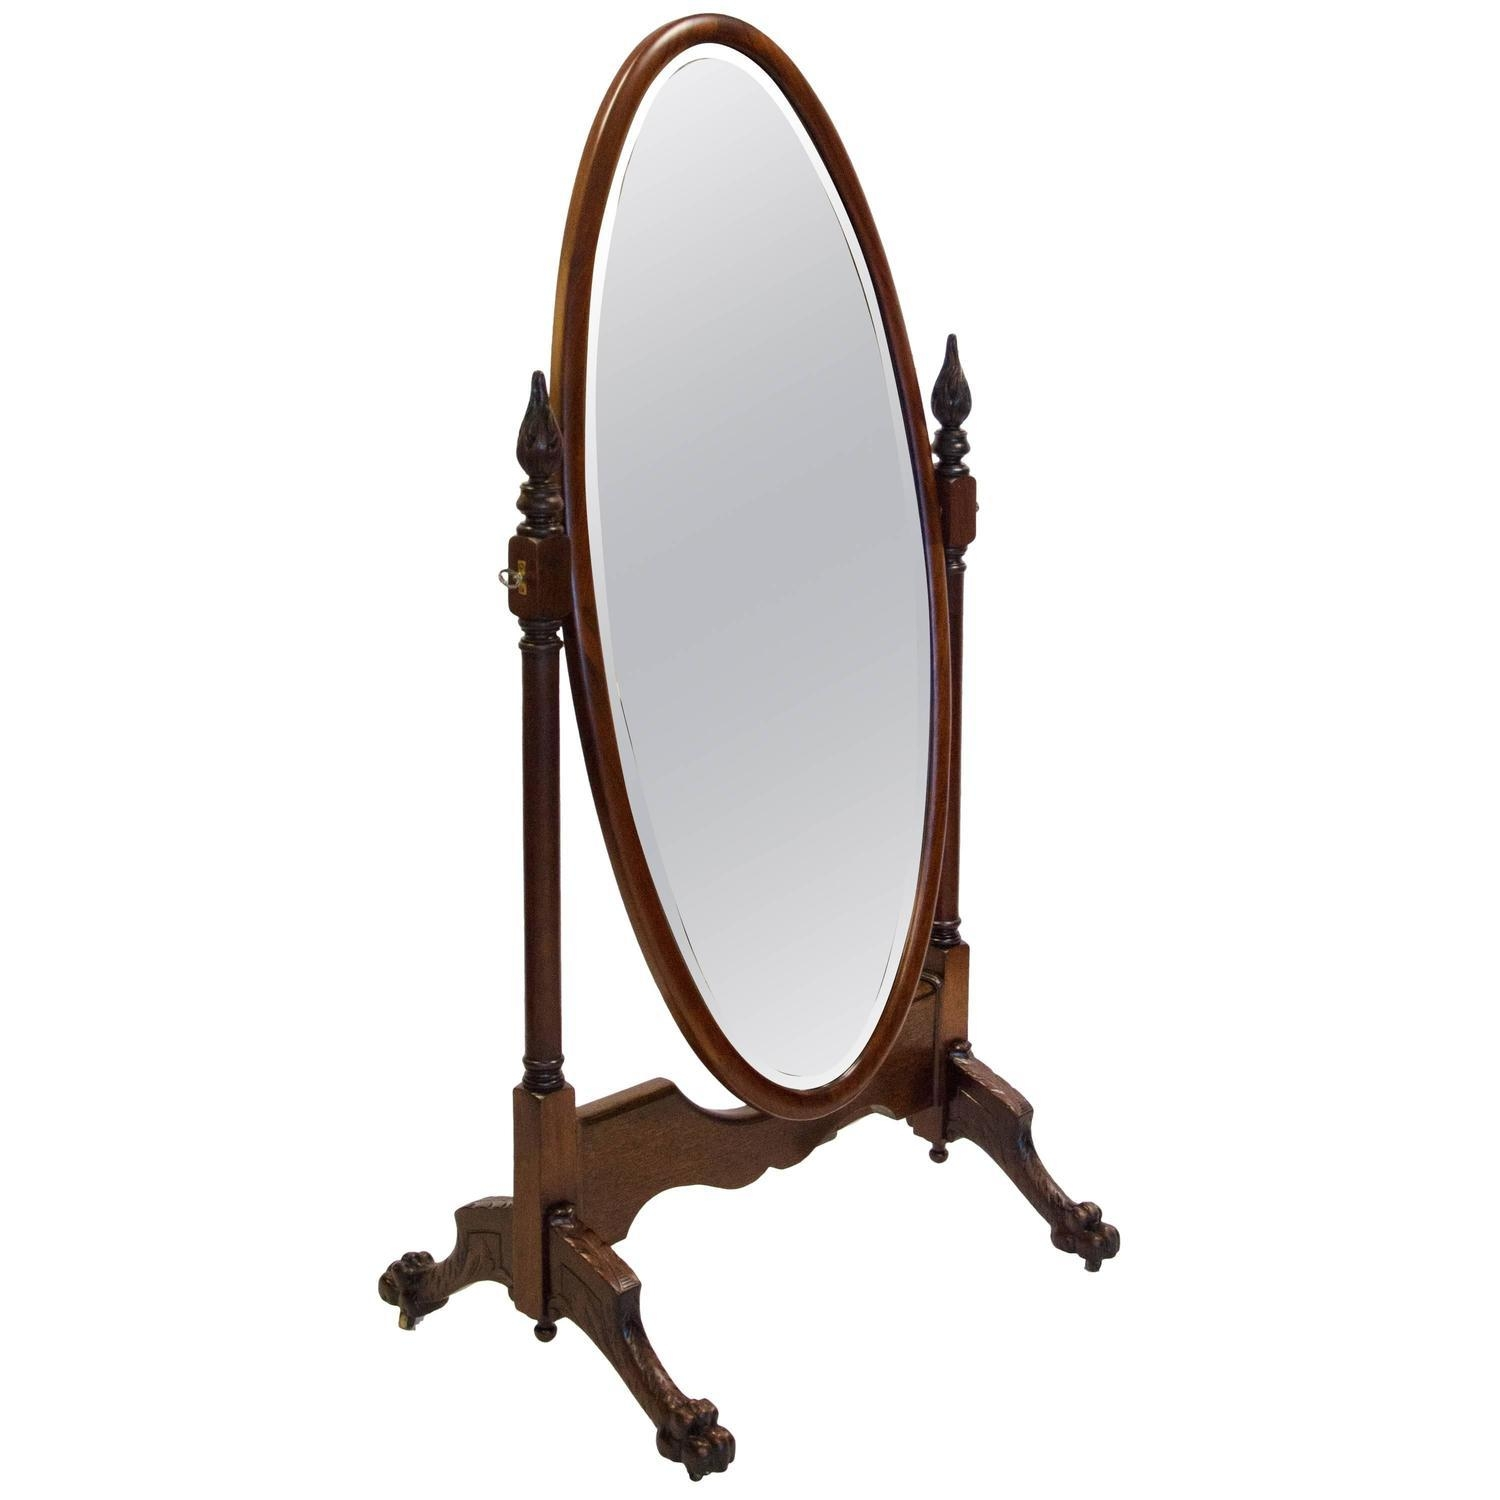 Antique & Vintage Floor Mirrors And Full Length Mirrors For Sale With Antique Long Mirror (Image 2 of 20)